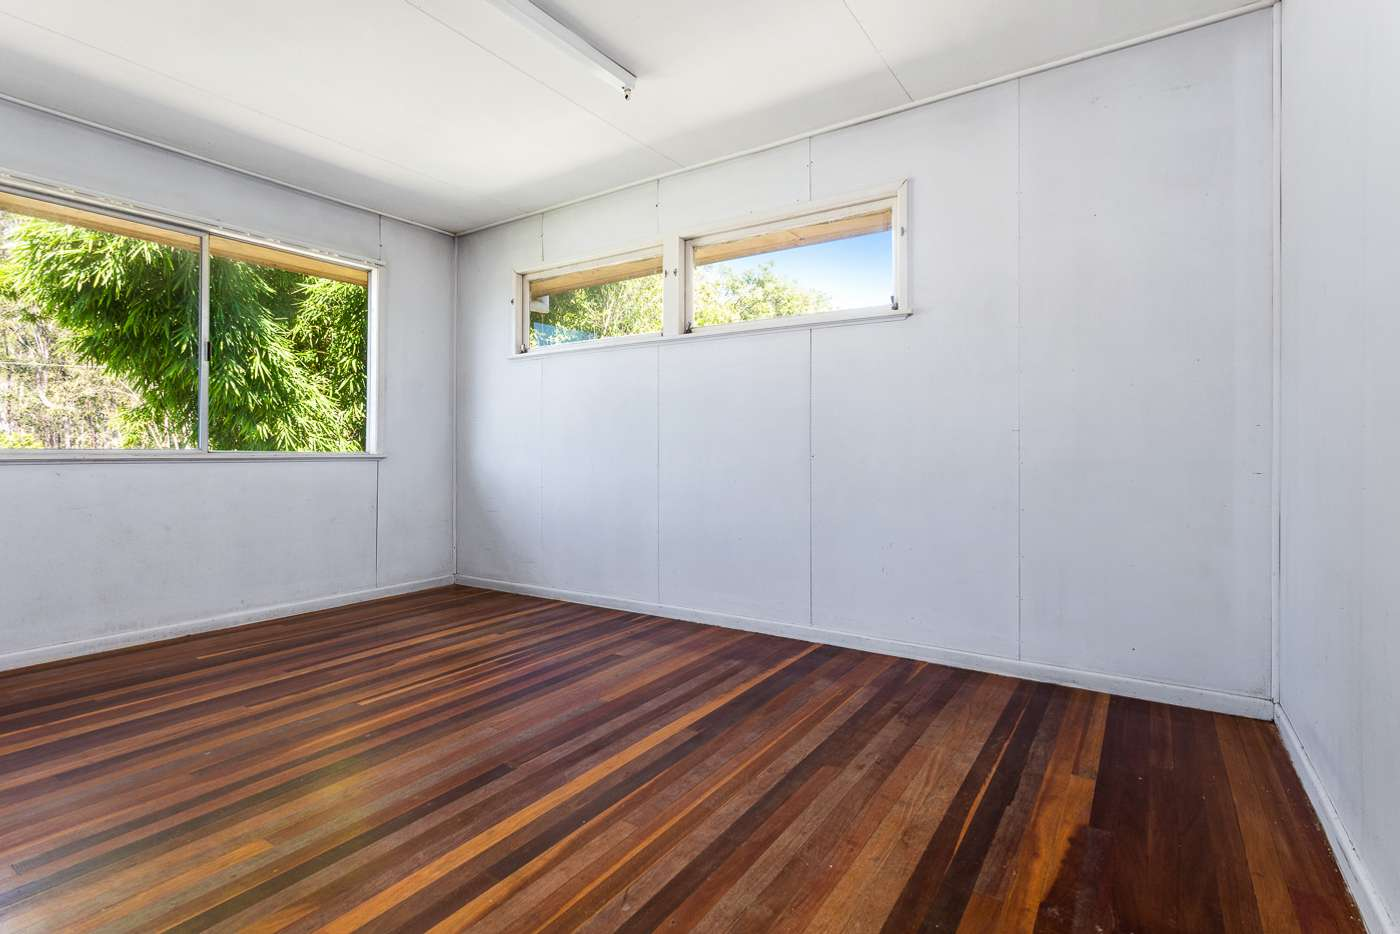 Seventh view of Homely house listing, 31 William Street, Goodna QLD 4300